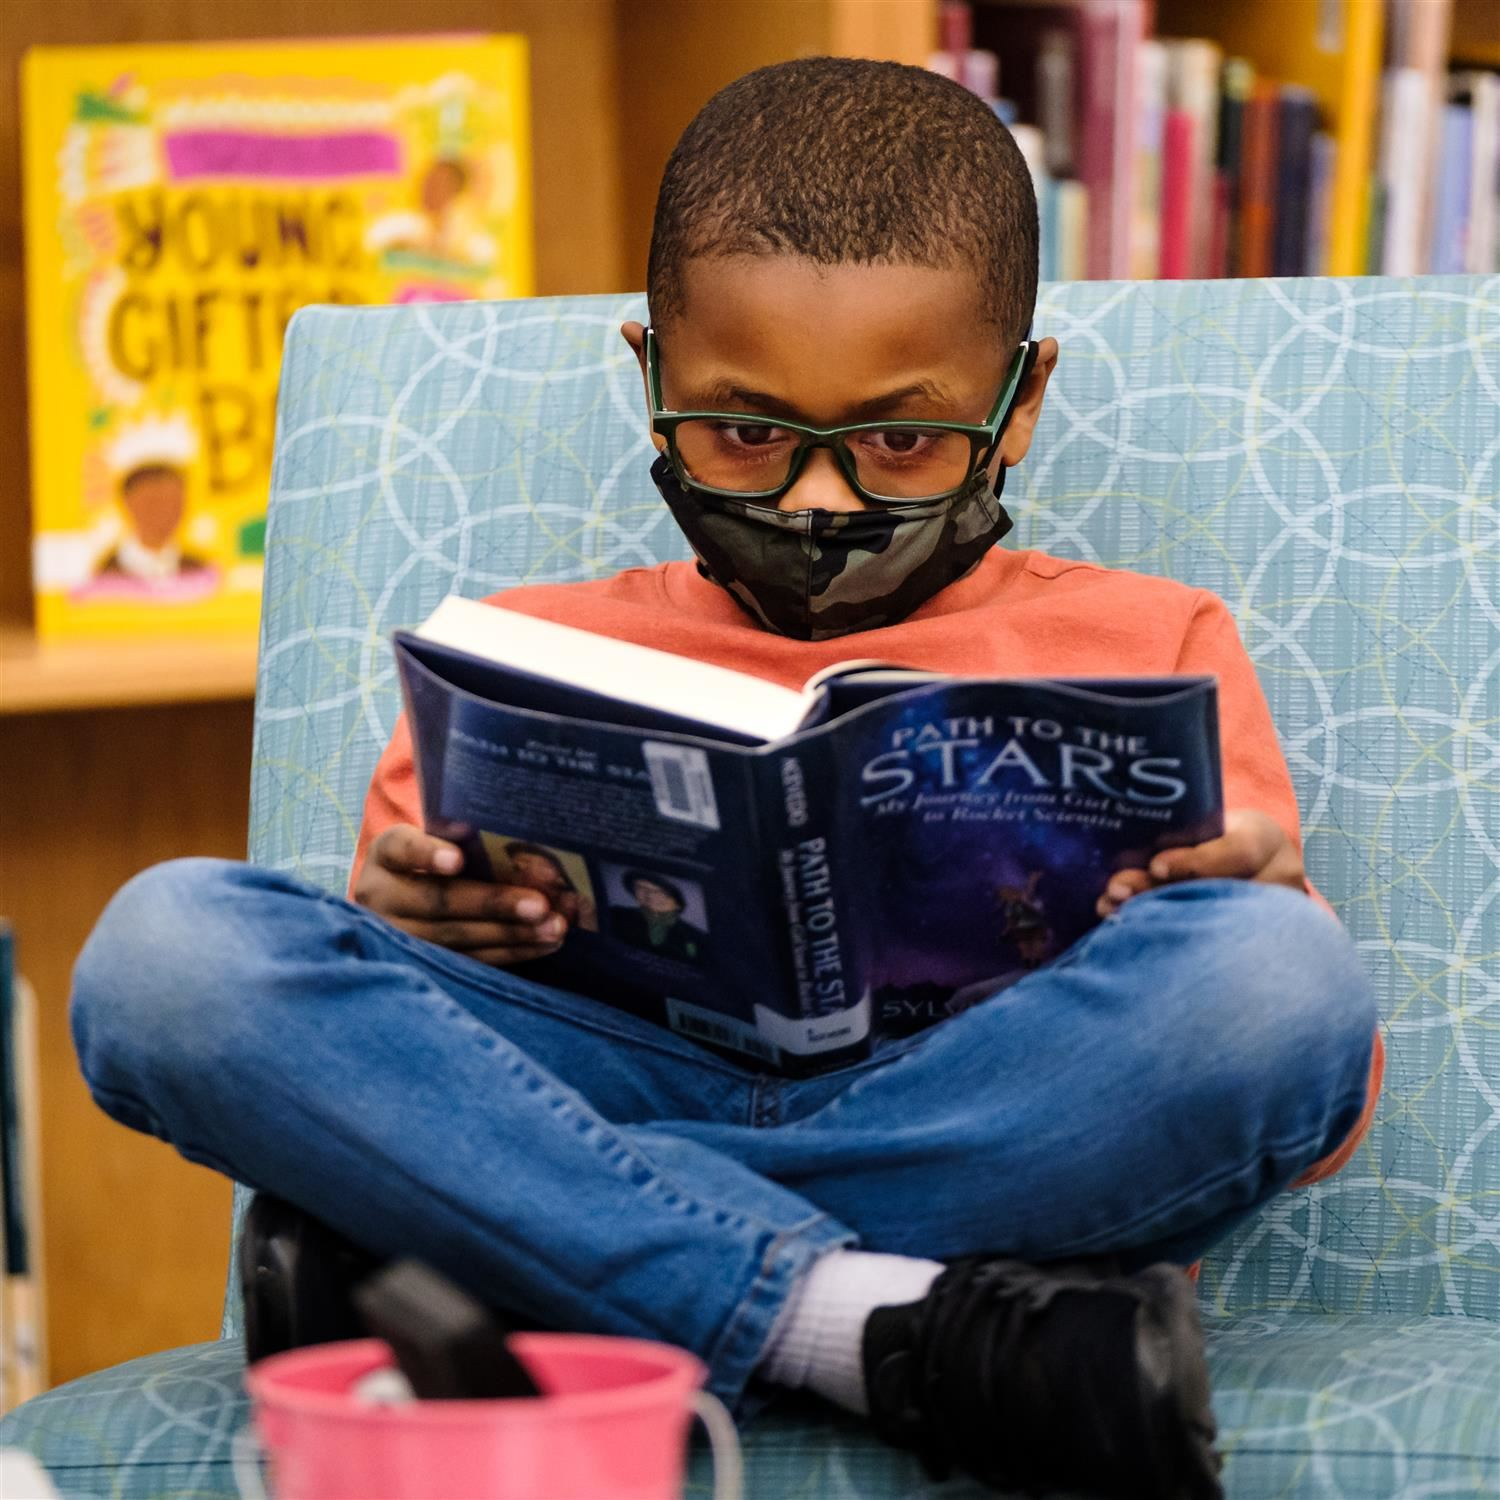 photo of boy reading a book